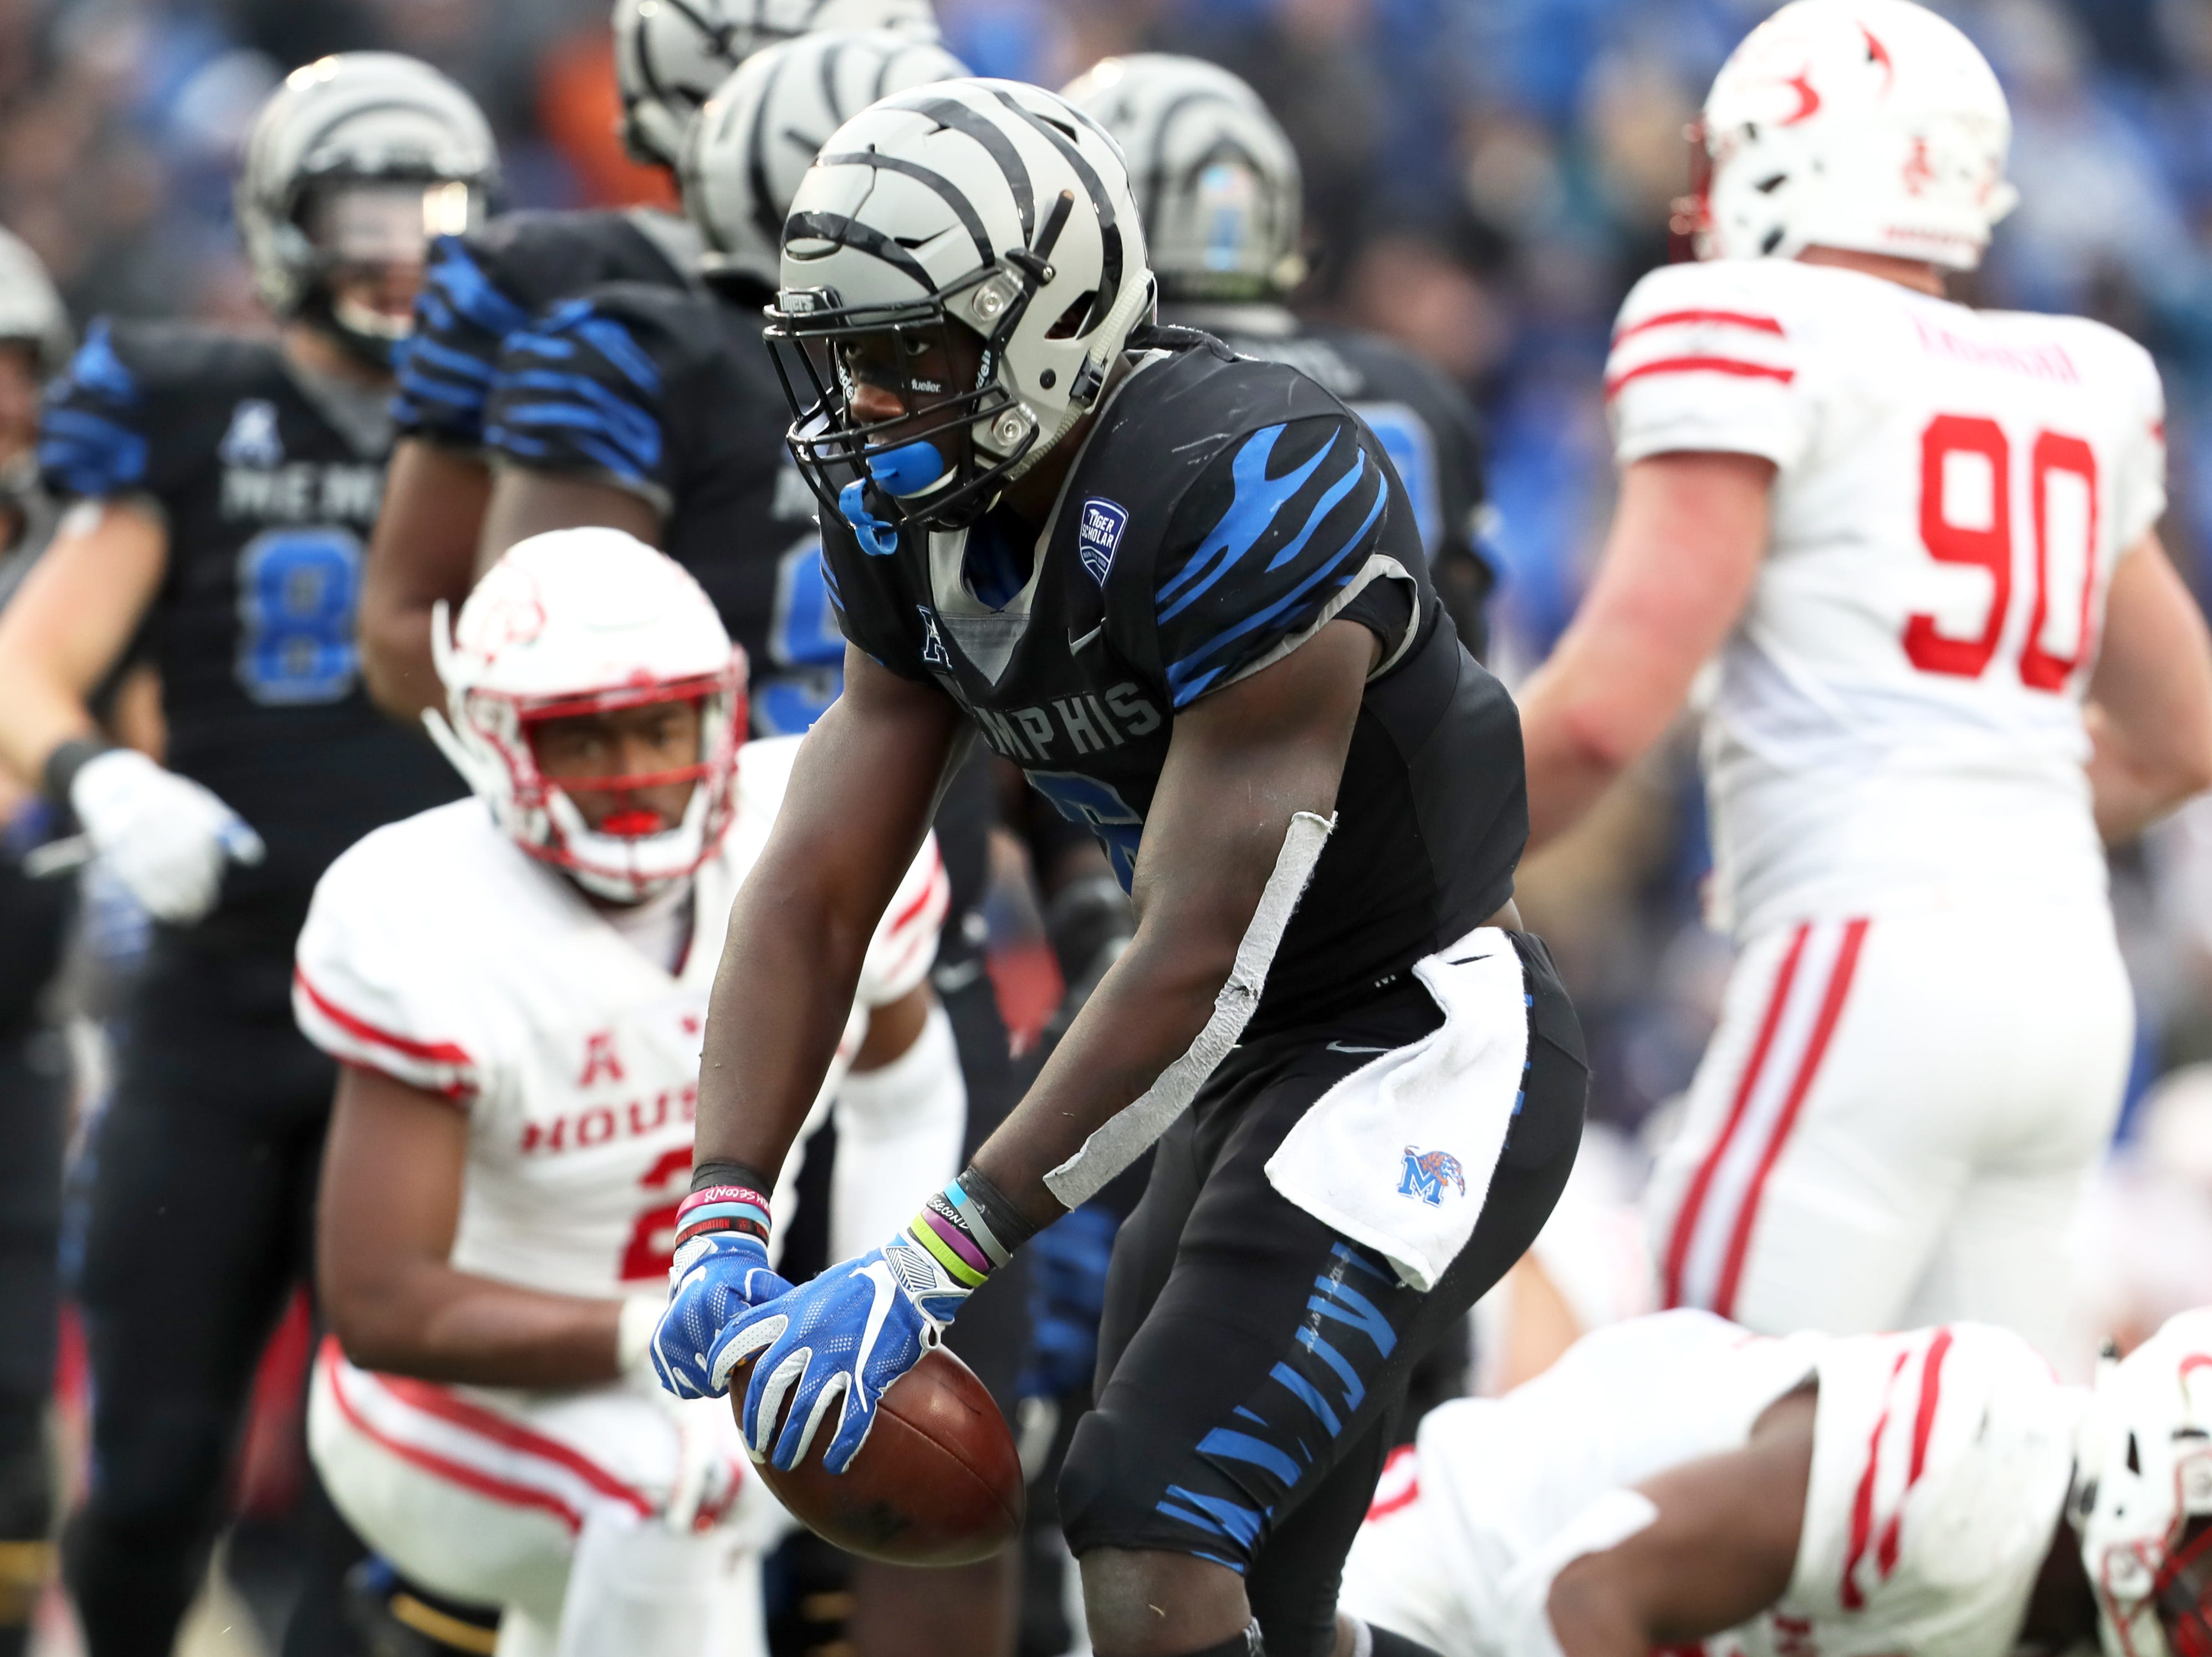 Memphis' Patrick Taylor Jr. celebrates a first down against the Houston Cougars as the Tigers win the AAC West title 52-31 at the Liberty Bowl on Friday, Nov. 23, 2018.